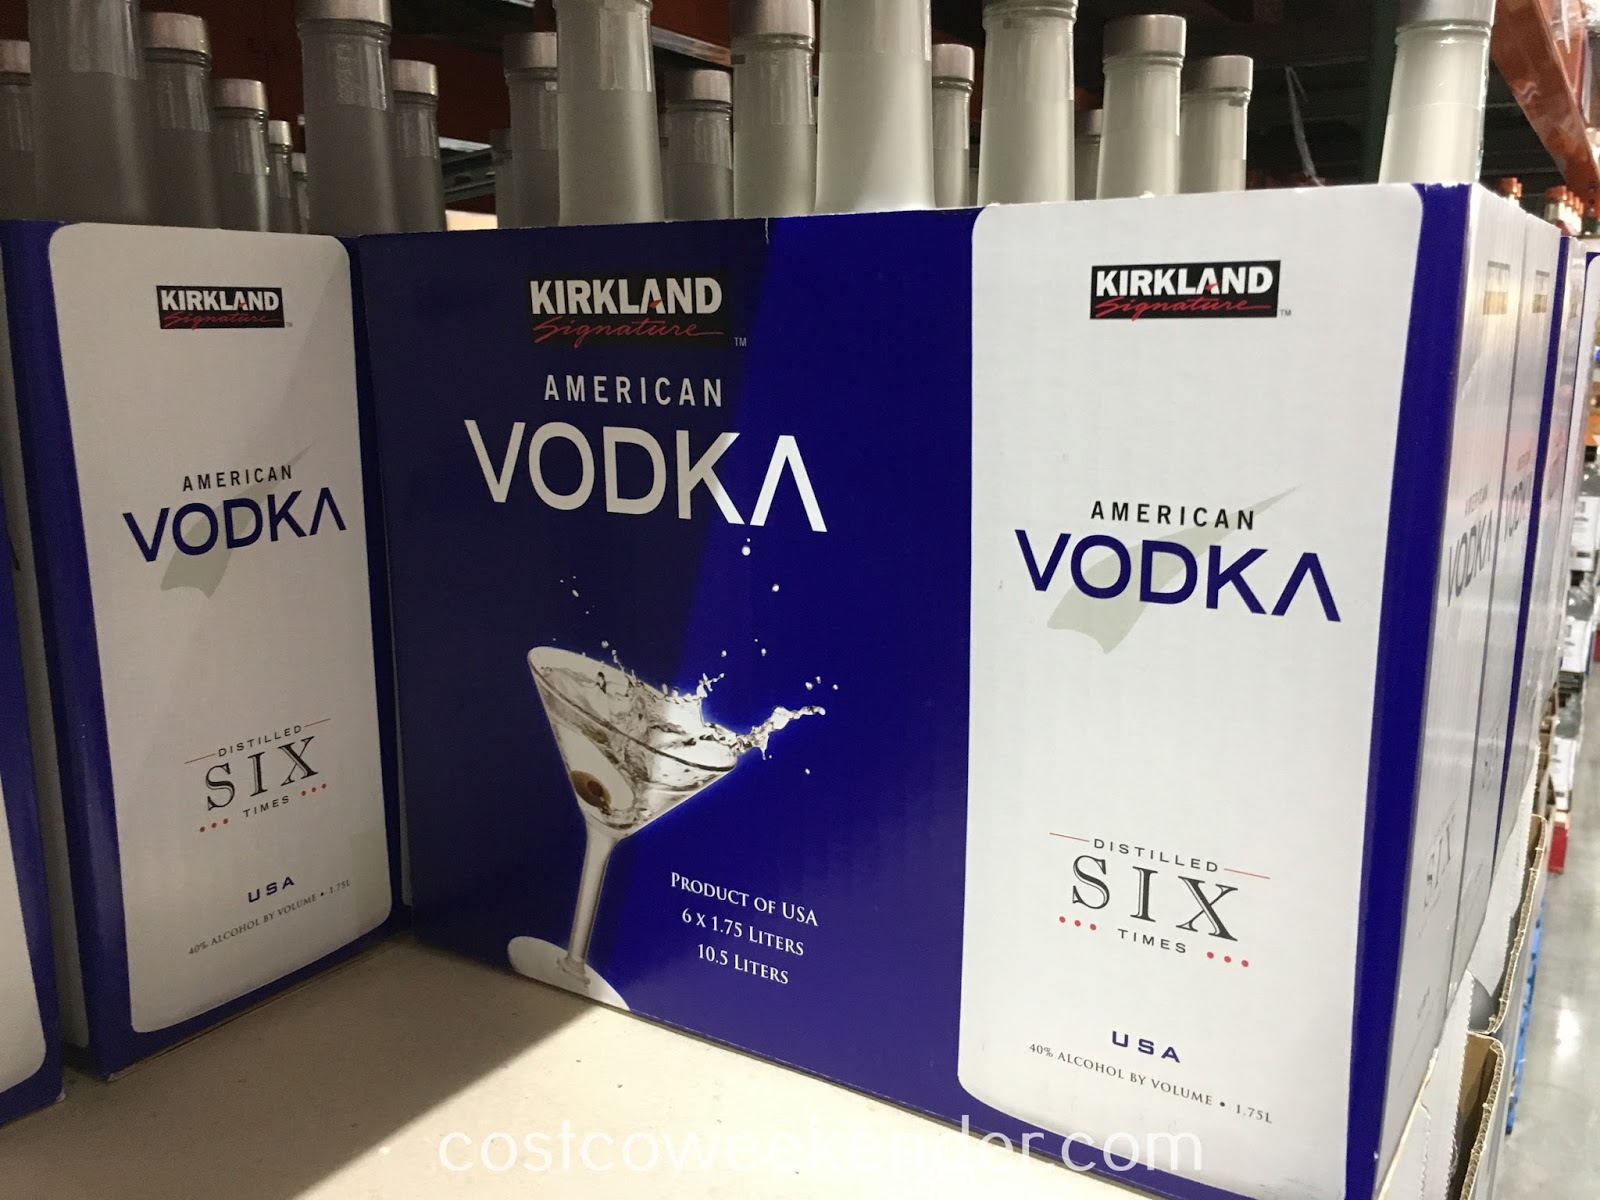 Enjoy the smooth taste of Kirkland Vodka